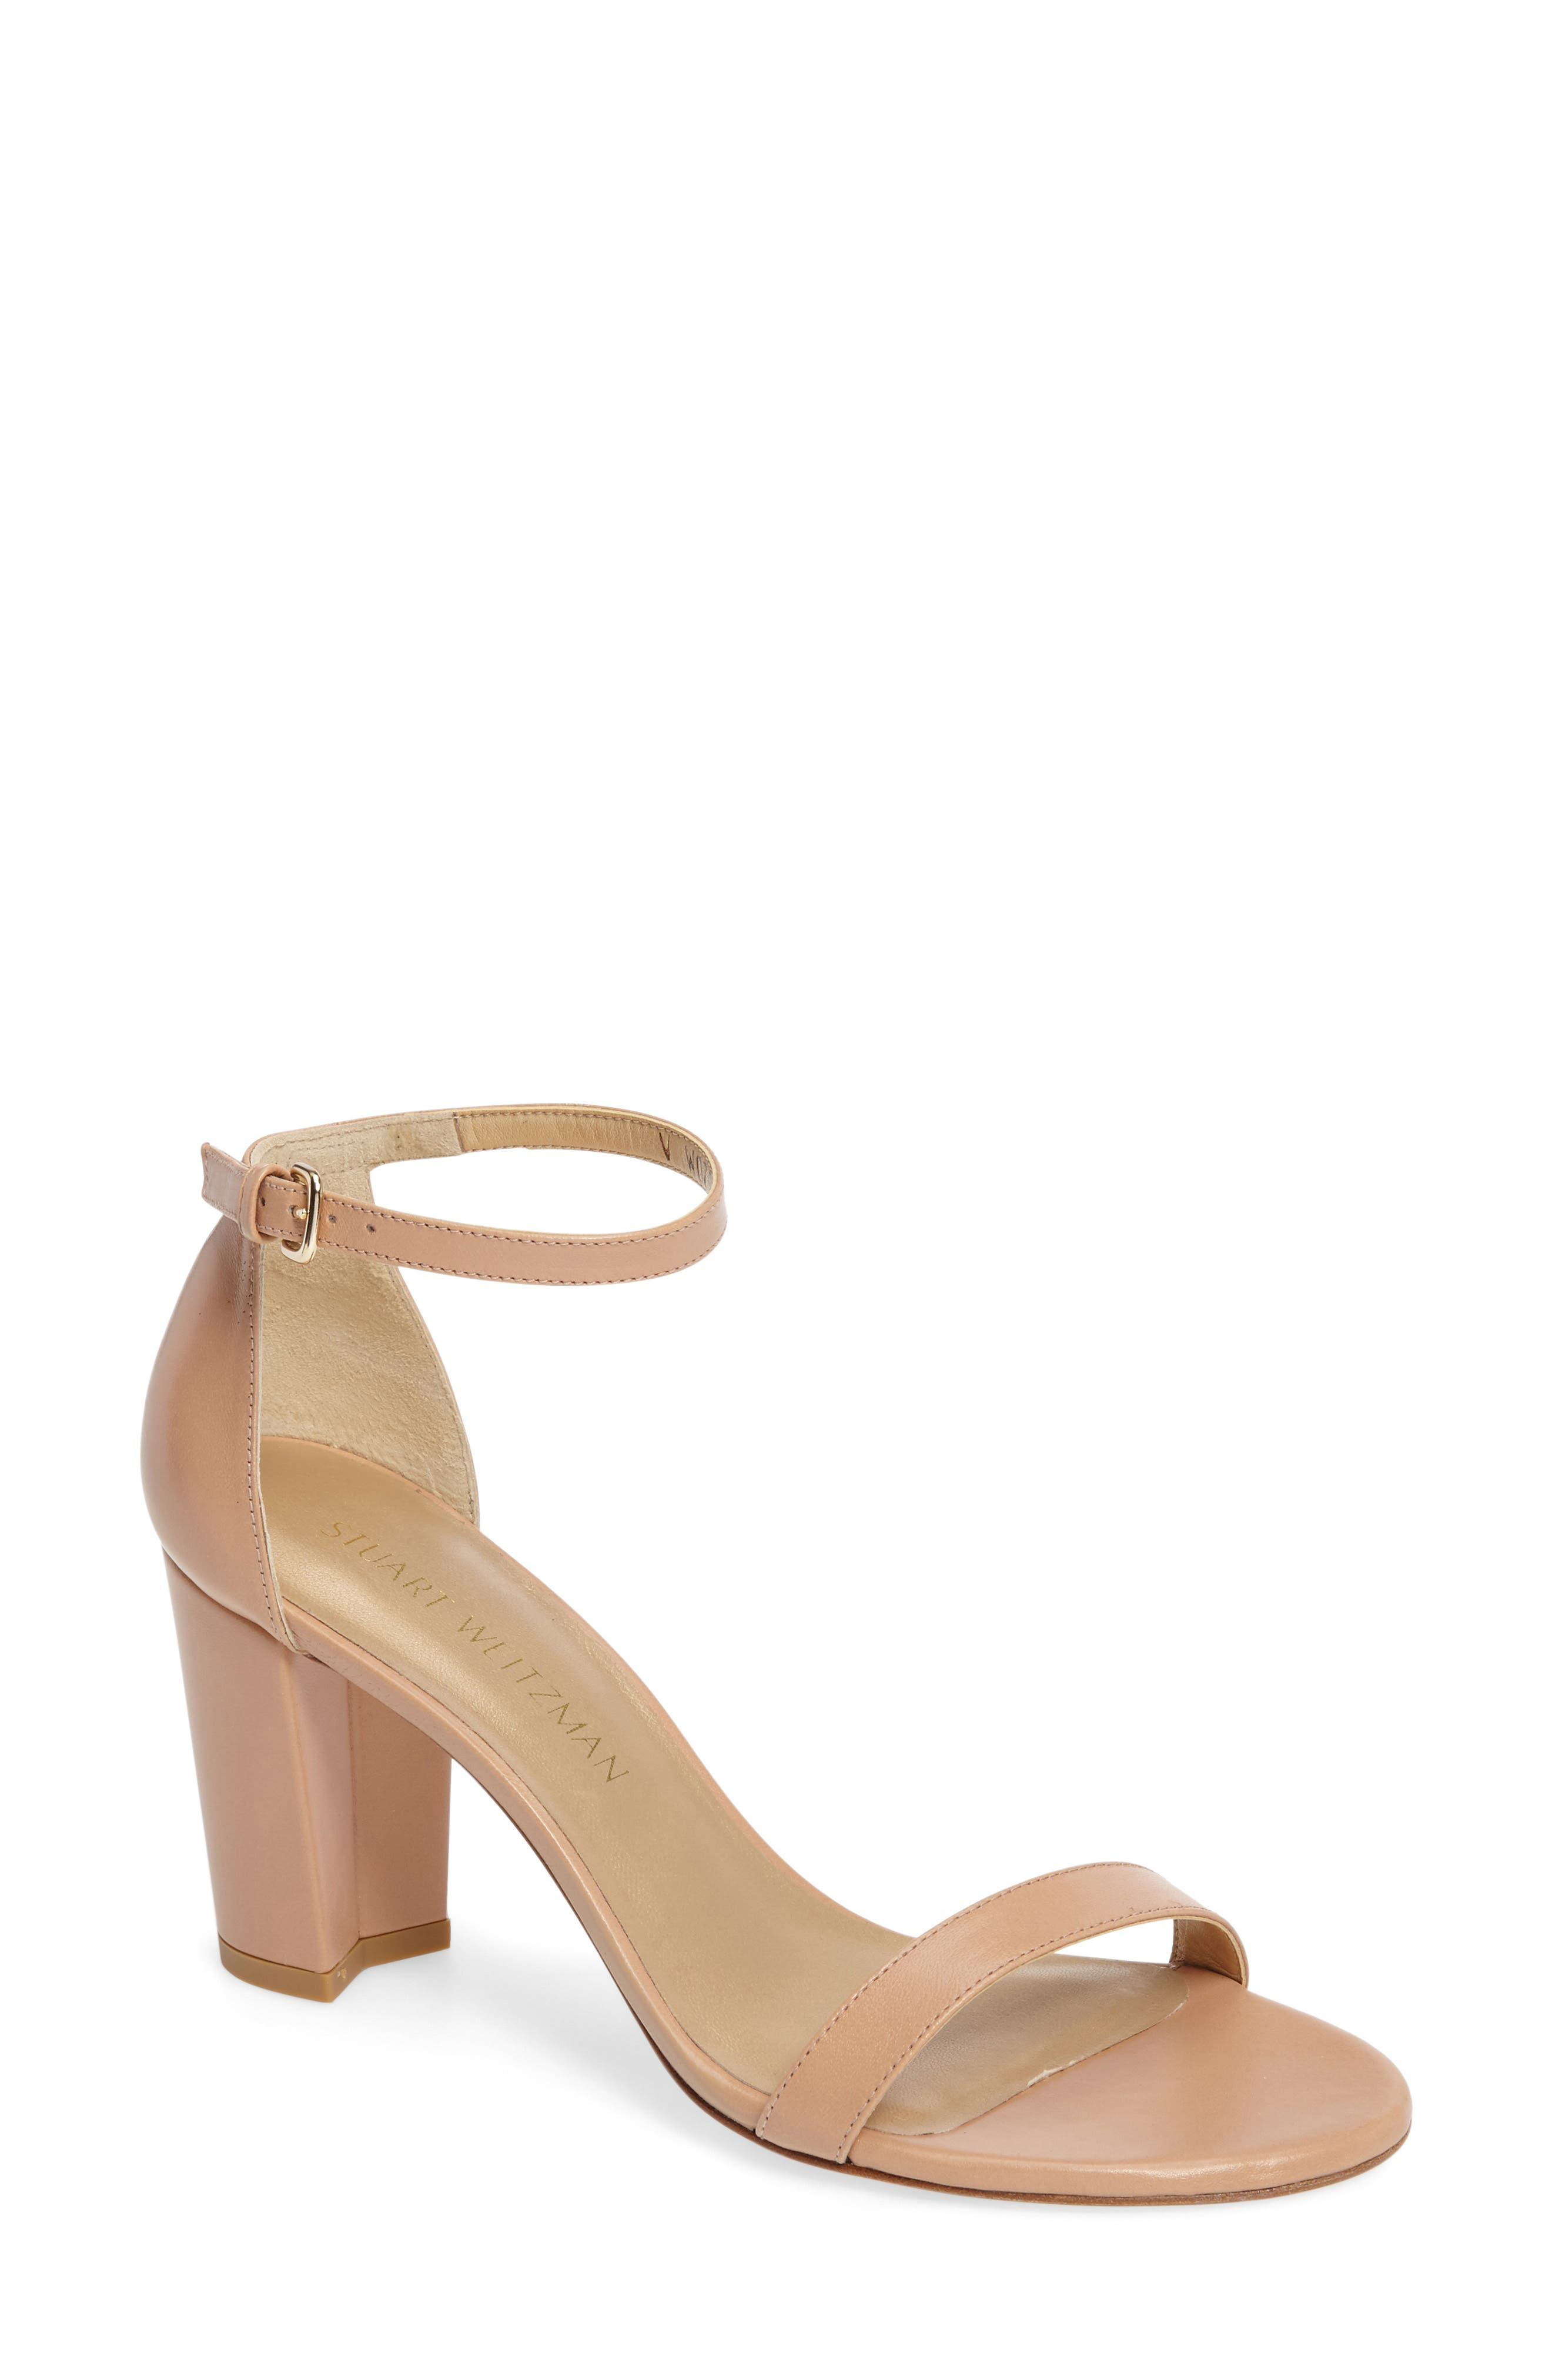 NearlyNude Ankle Strap Sandal,                             Main thumbnail 20, color,